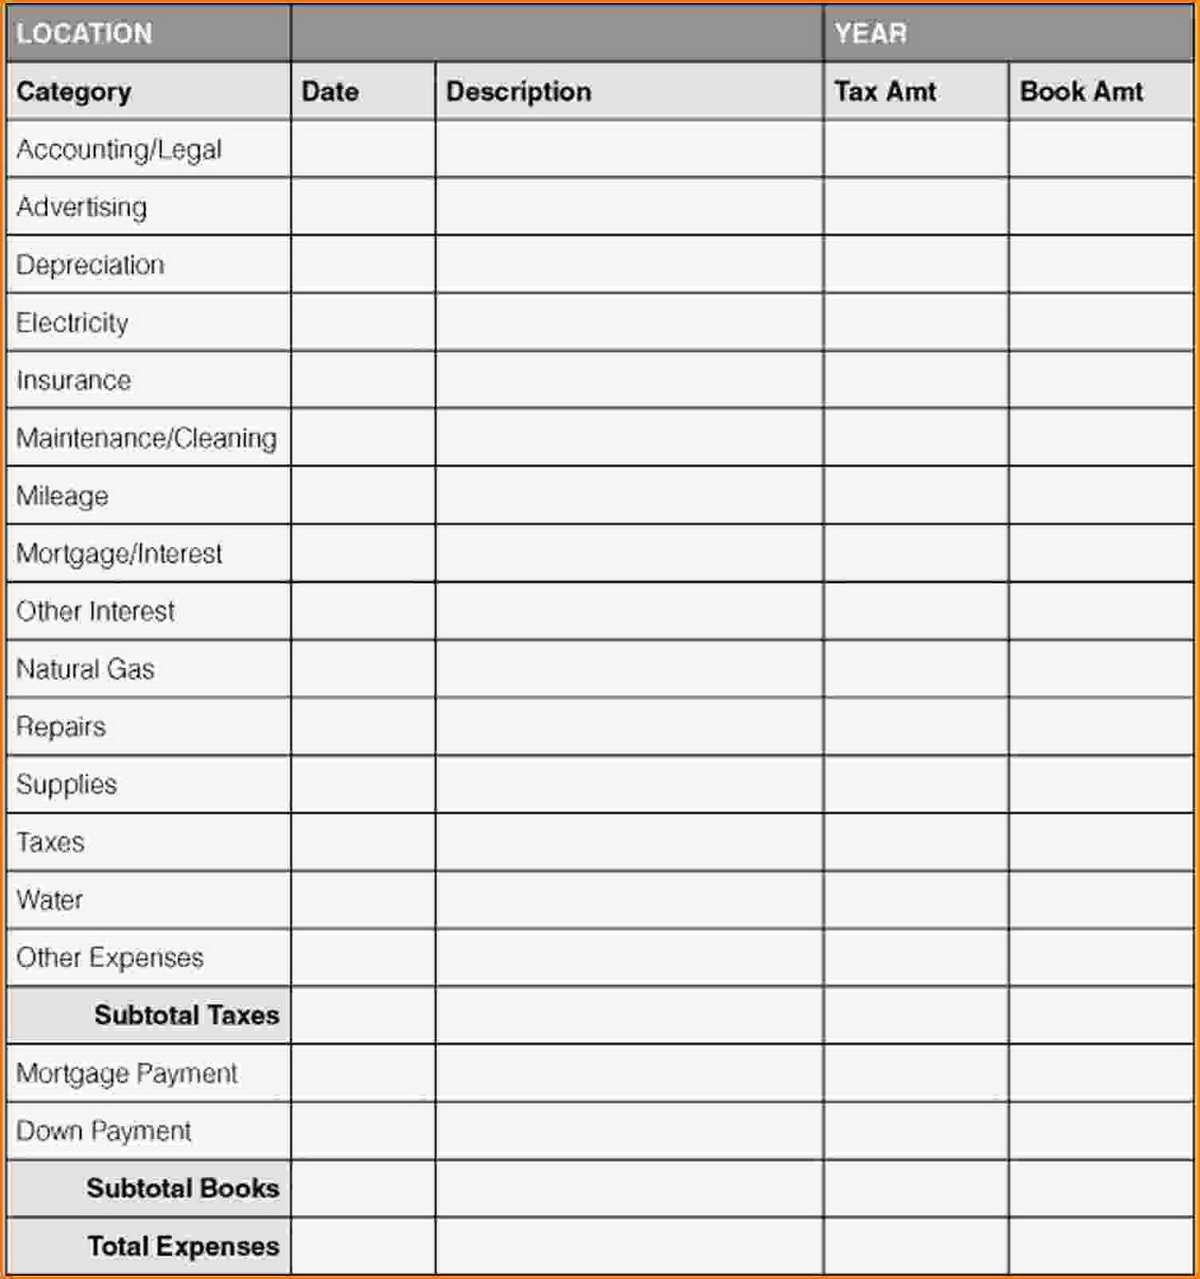 Business Expense Tracking Spreadsheet With Small Business Expenses Intended For Business Expense Spreadsheet